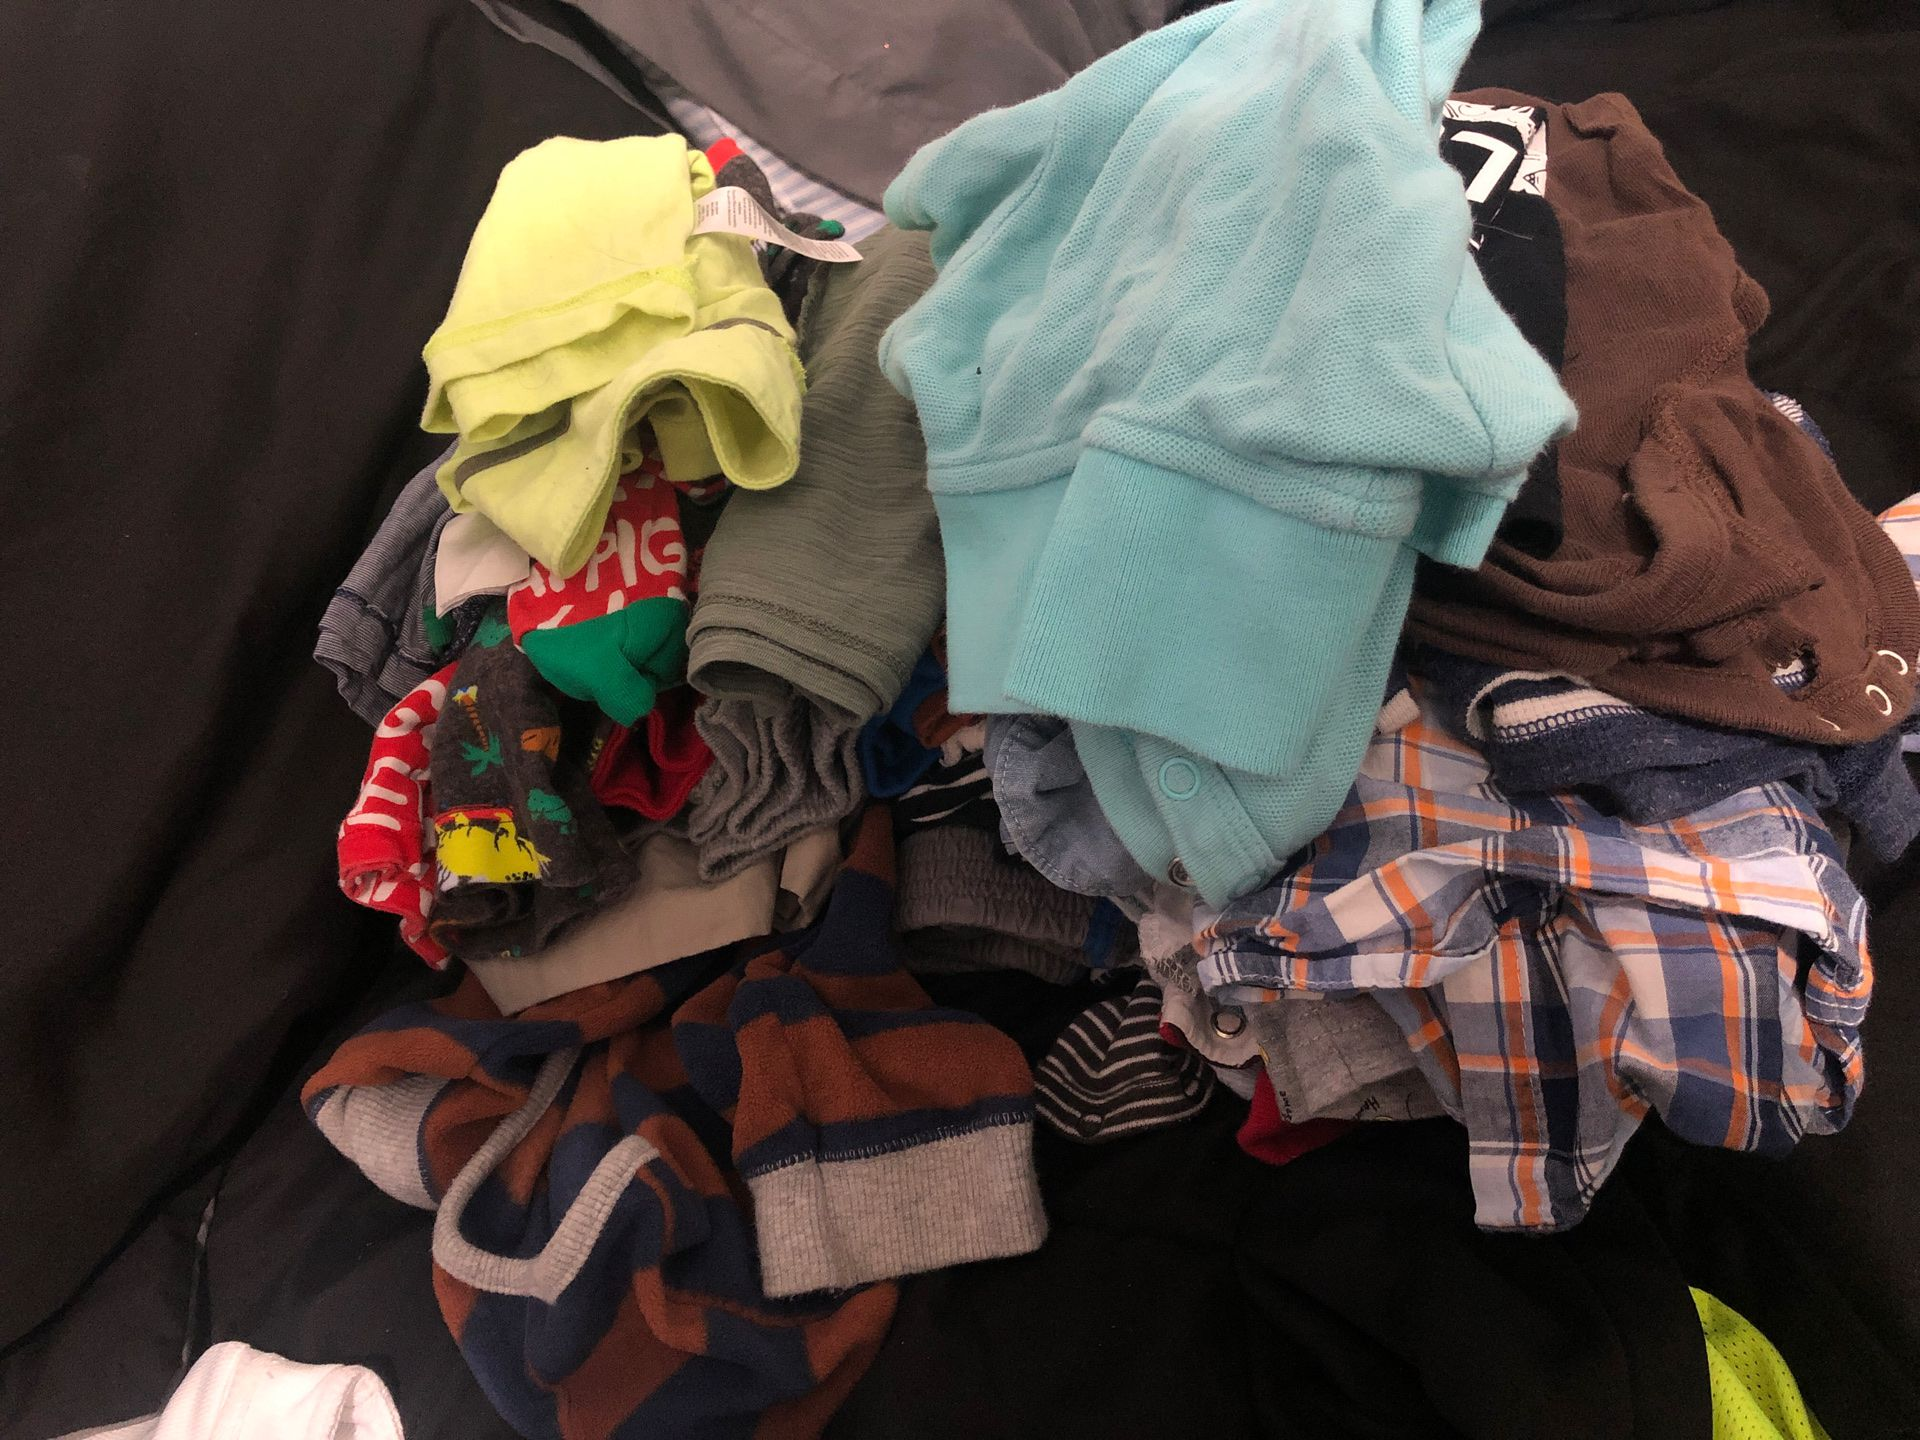 BOY BABY CLOTHES 12-24 MONTHS/ SHIRTS, POLOS, SHORTS, SWEATERS, ETC!